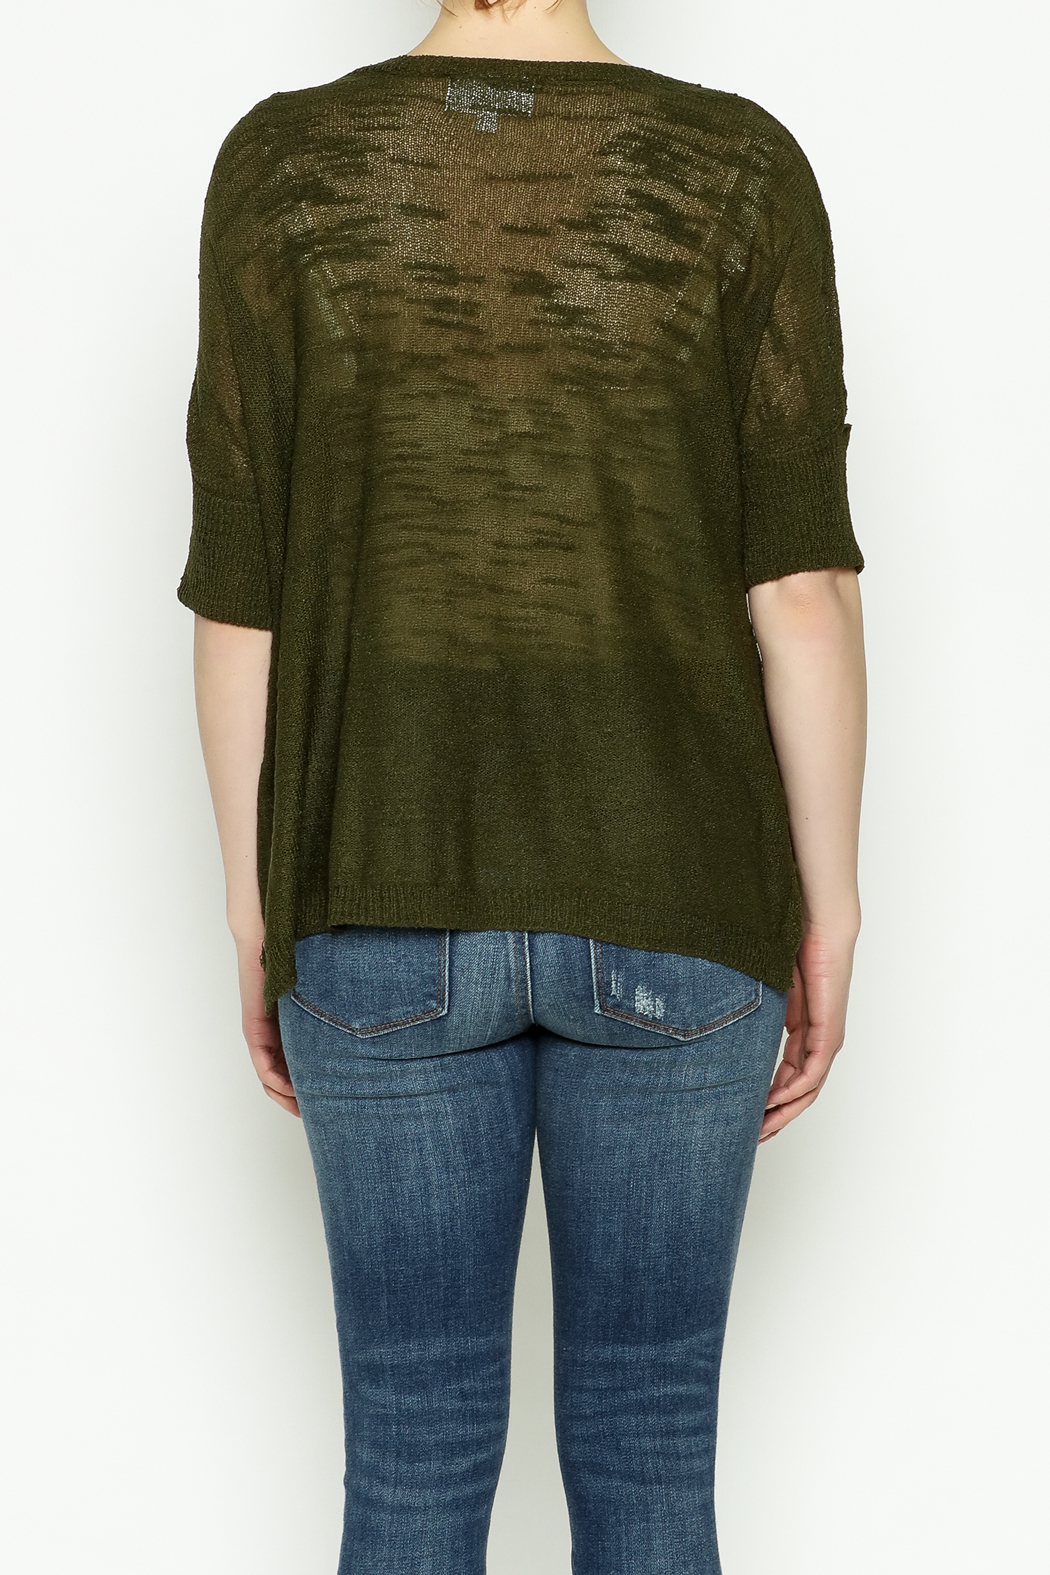 Olive & Oak Olive Lightweight Sweater - Back Cropped Image